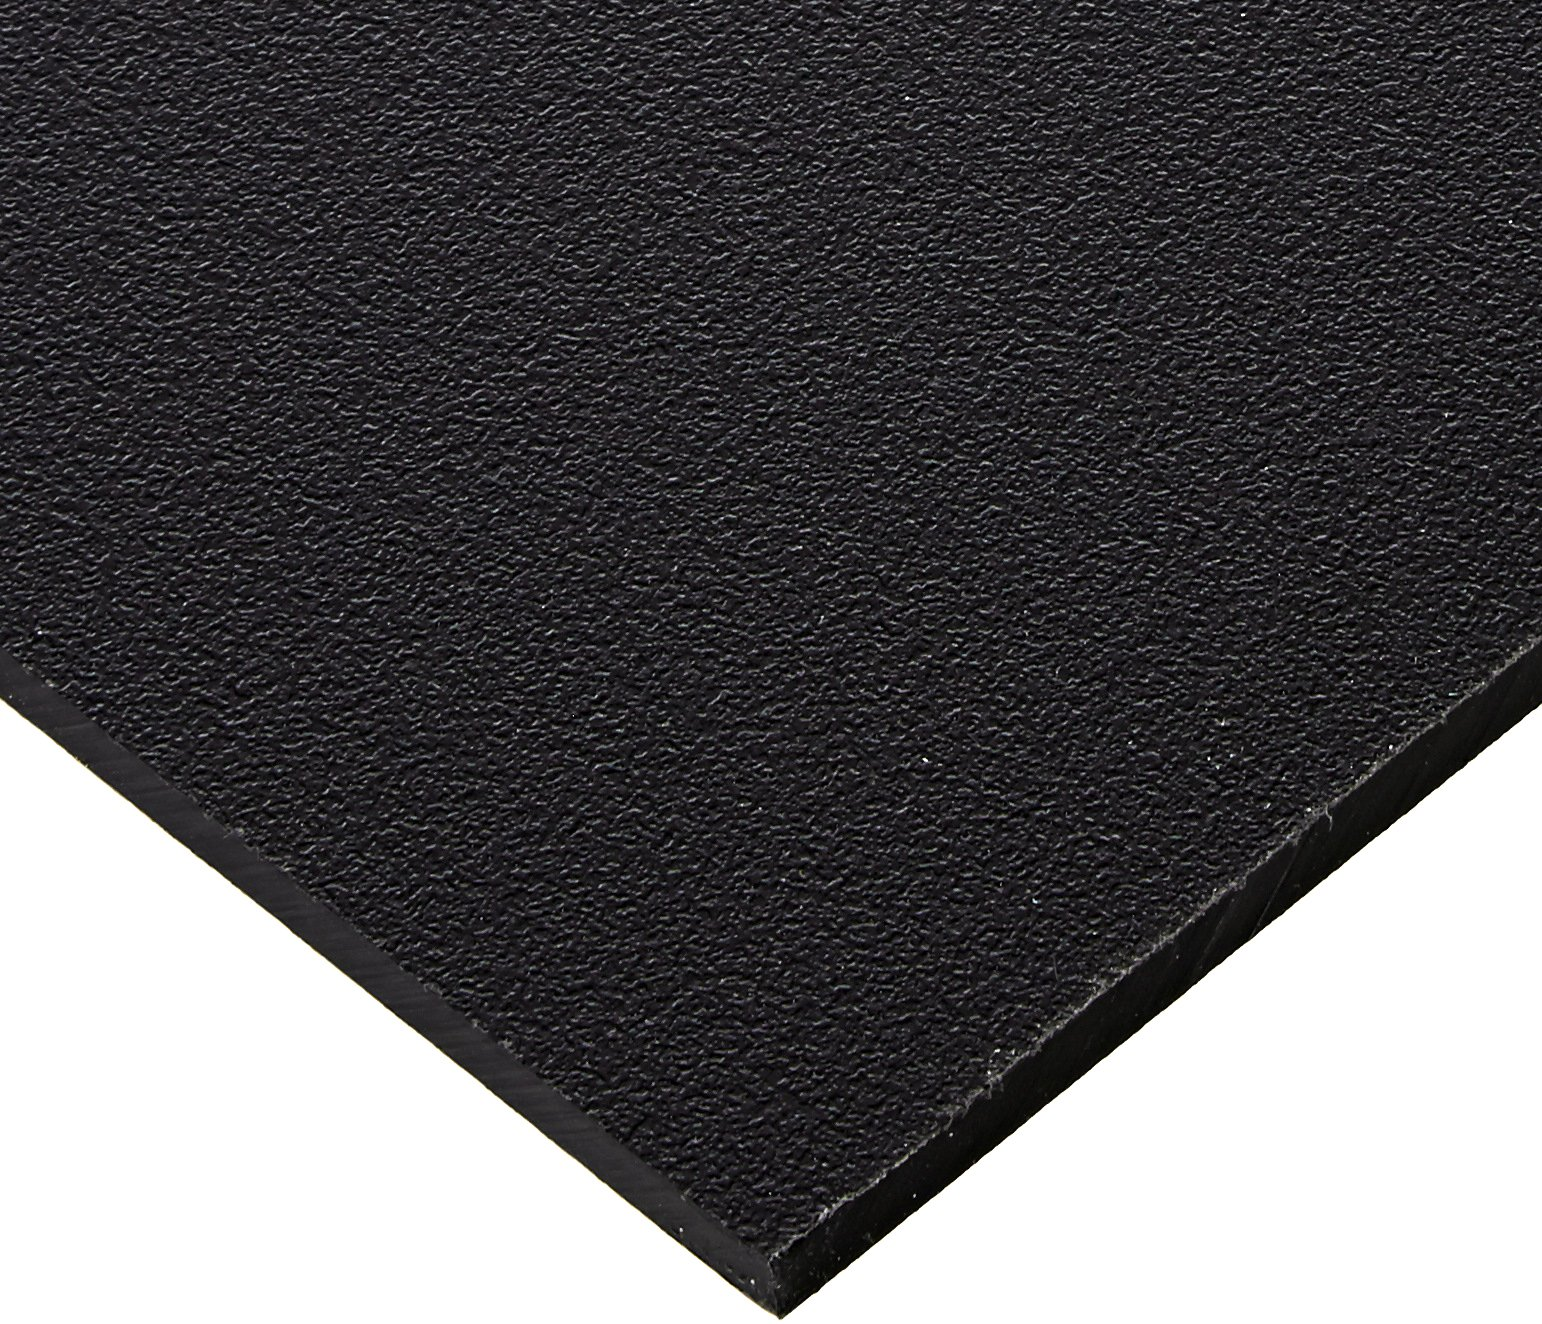 Seaboard High Density Polyethylene Sheet, Matte Finish, 1/4'' Thick, 24'' Length x 48'' Width, Black